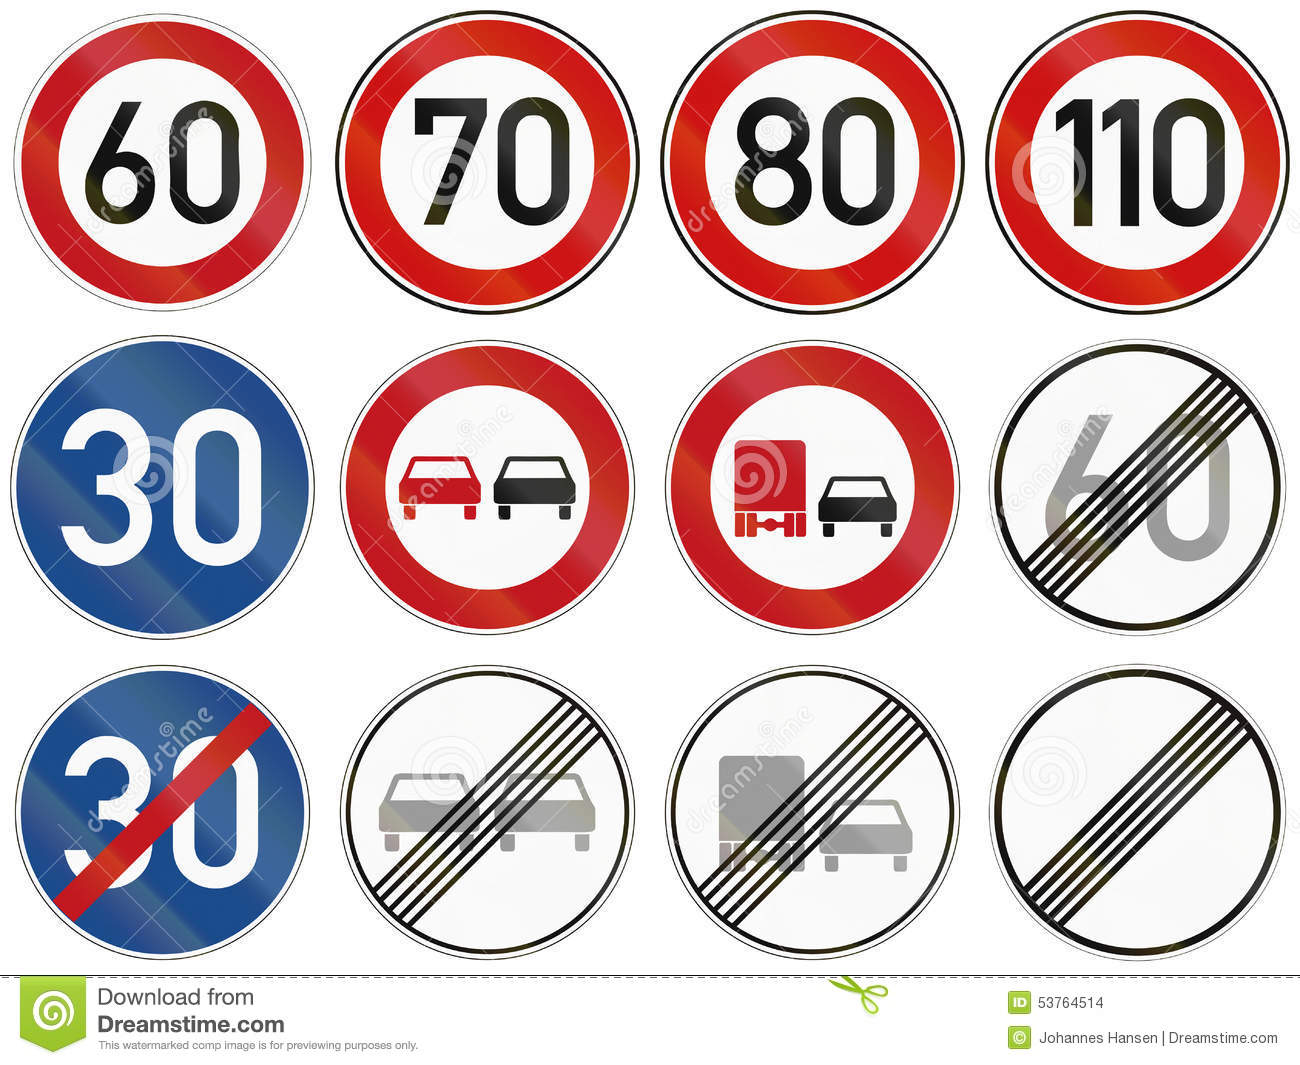 federal road restrictions in germany clipart golden gate bridge clipart golden gate bridge